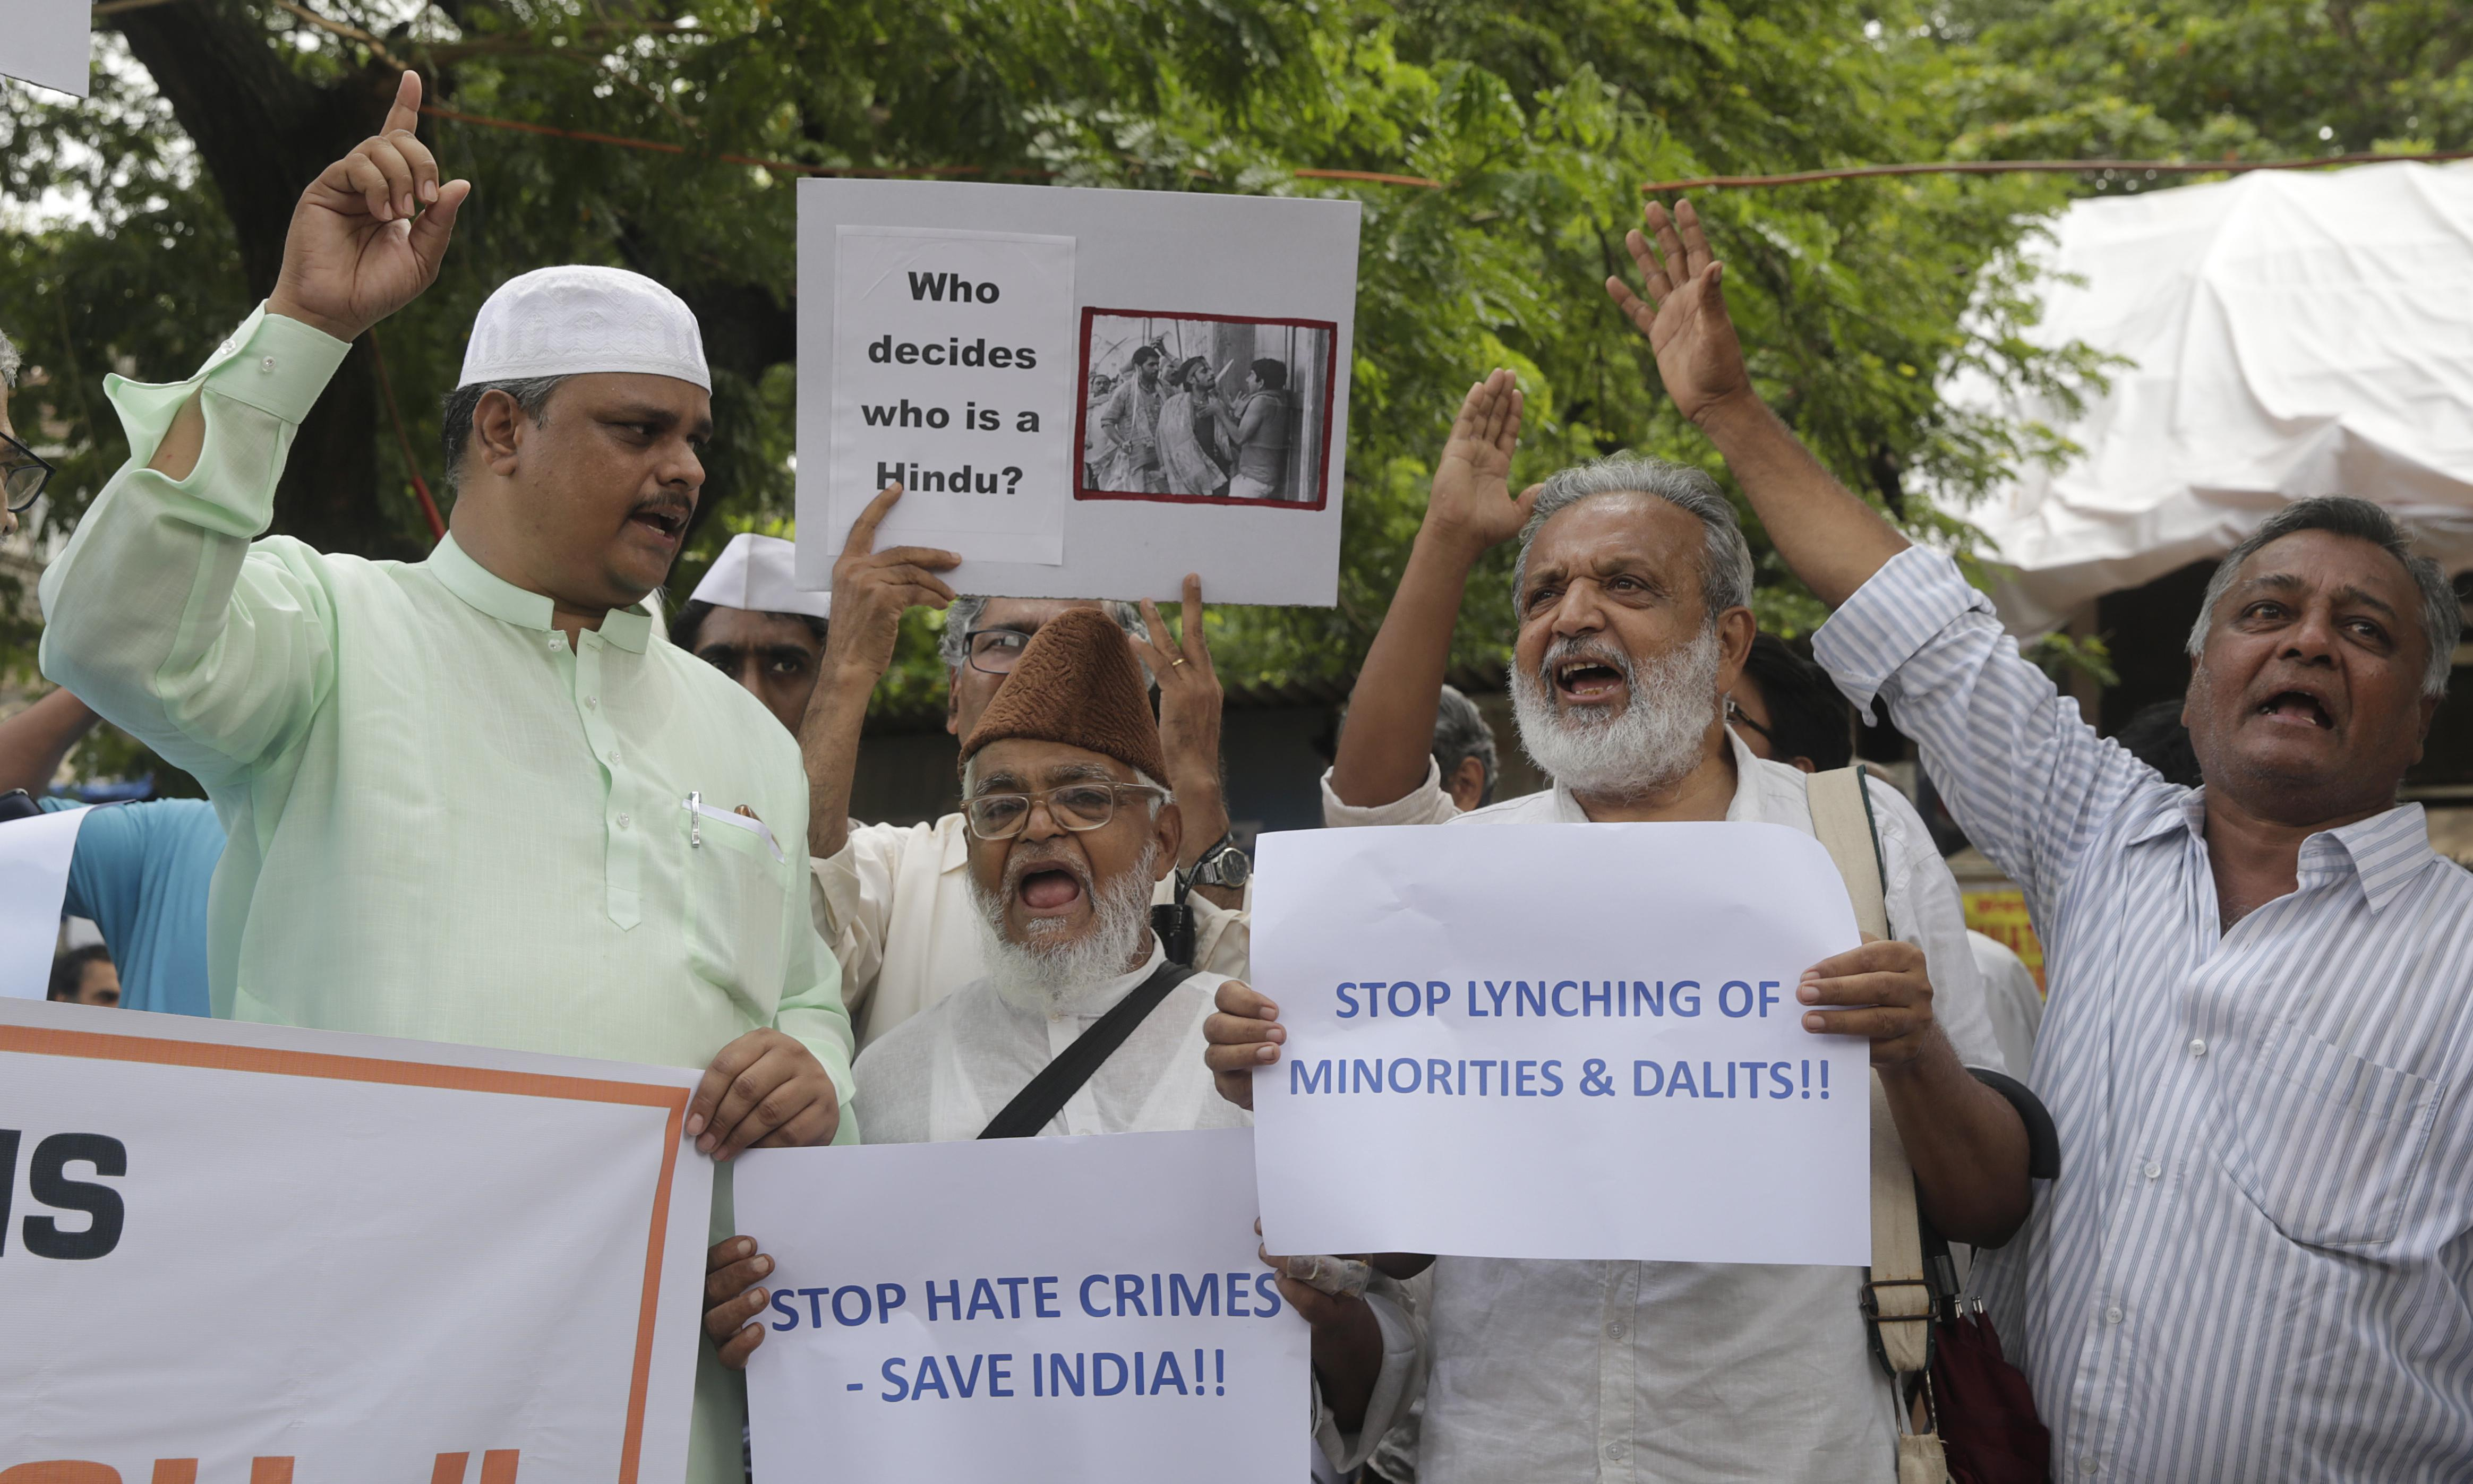 Mobs are killing Muslims in India. Why is no one stopping them?